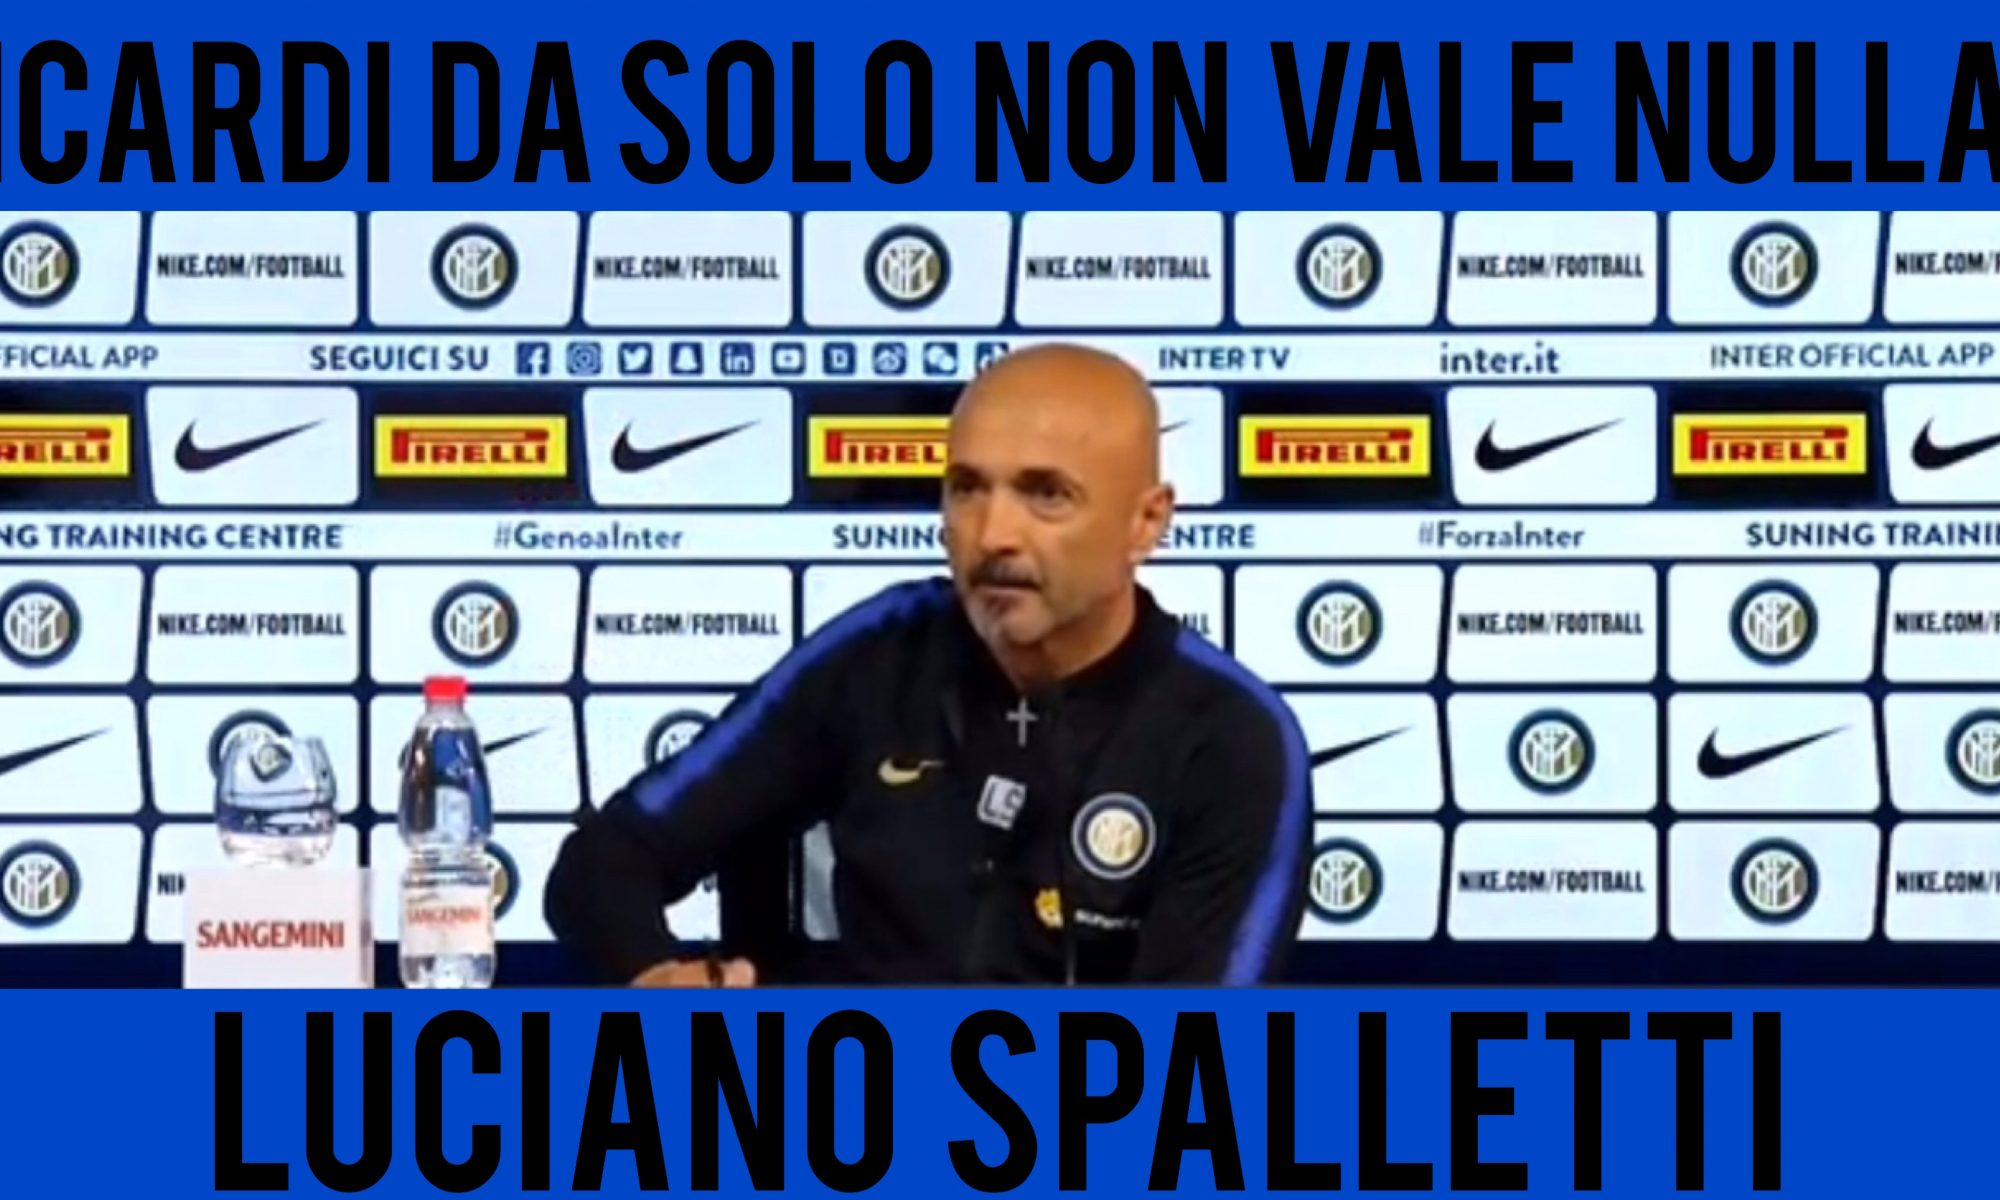 Spalletti-Icardi-Inter